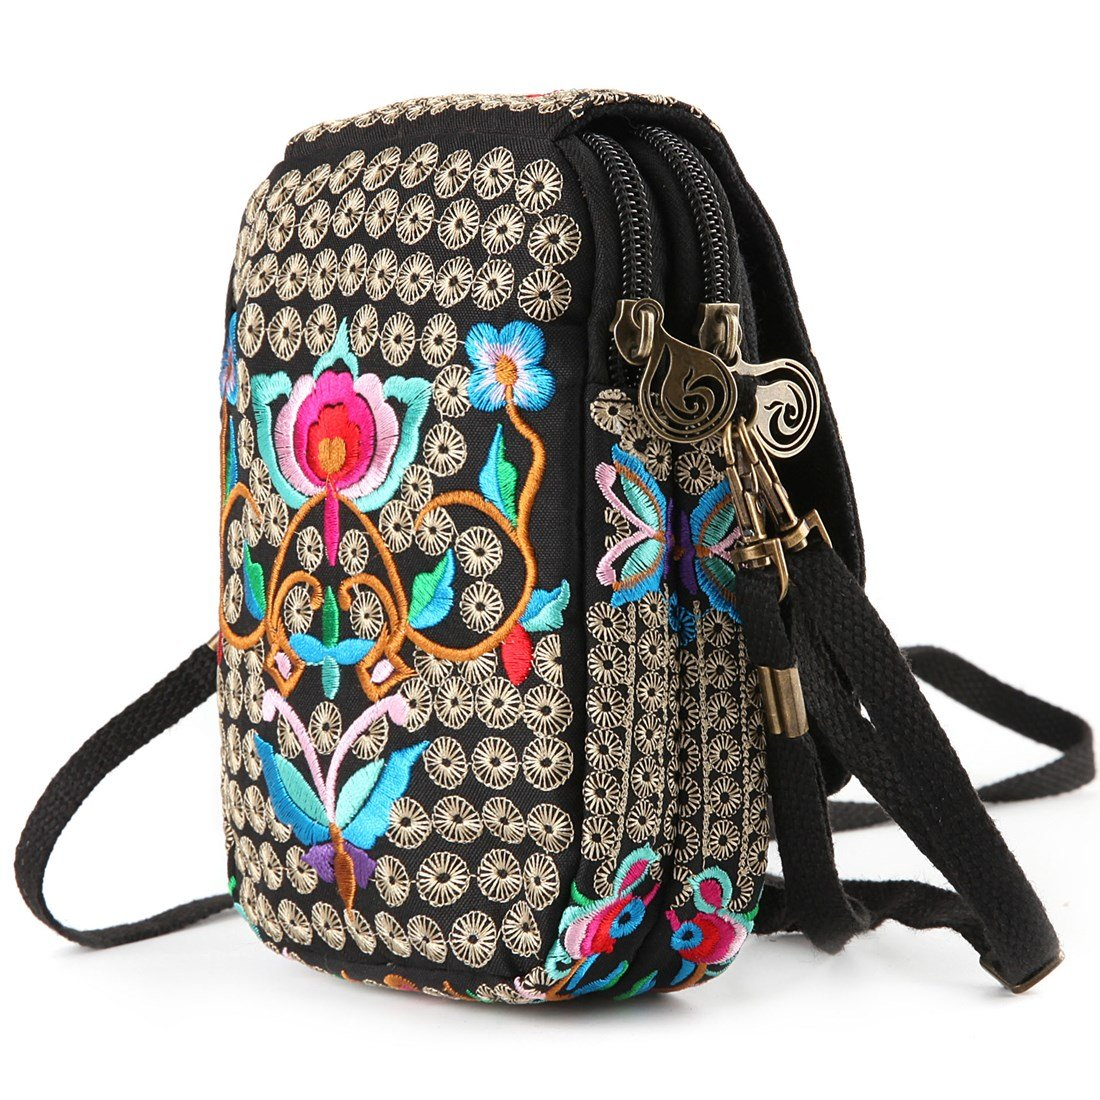 Embroidery Flowers Canvas Crossbody Bag, Women Messenger Bag, Cellphone Pouch Purse by Goodhan (Image #7)